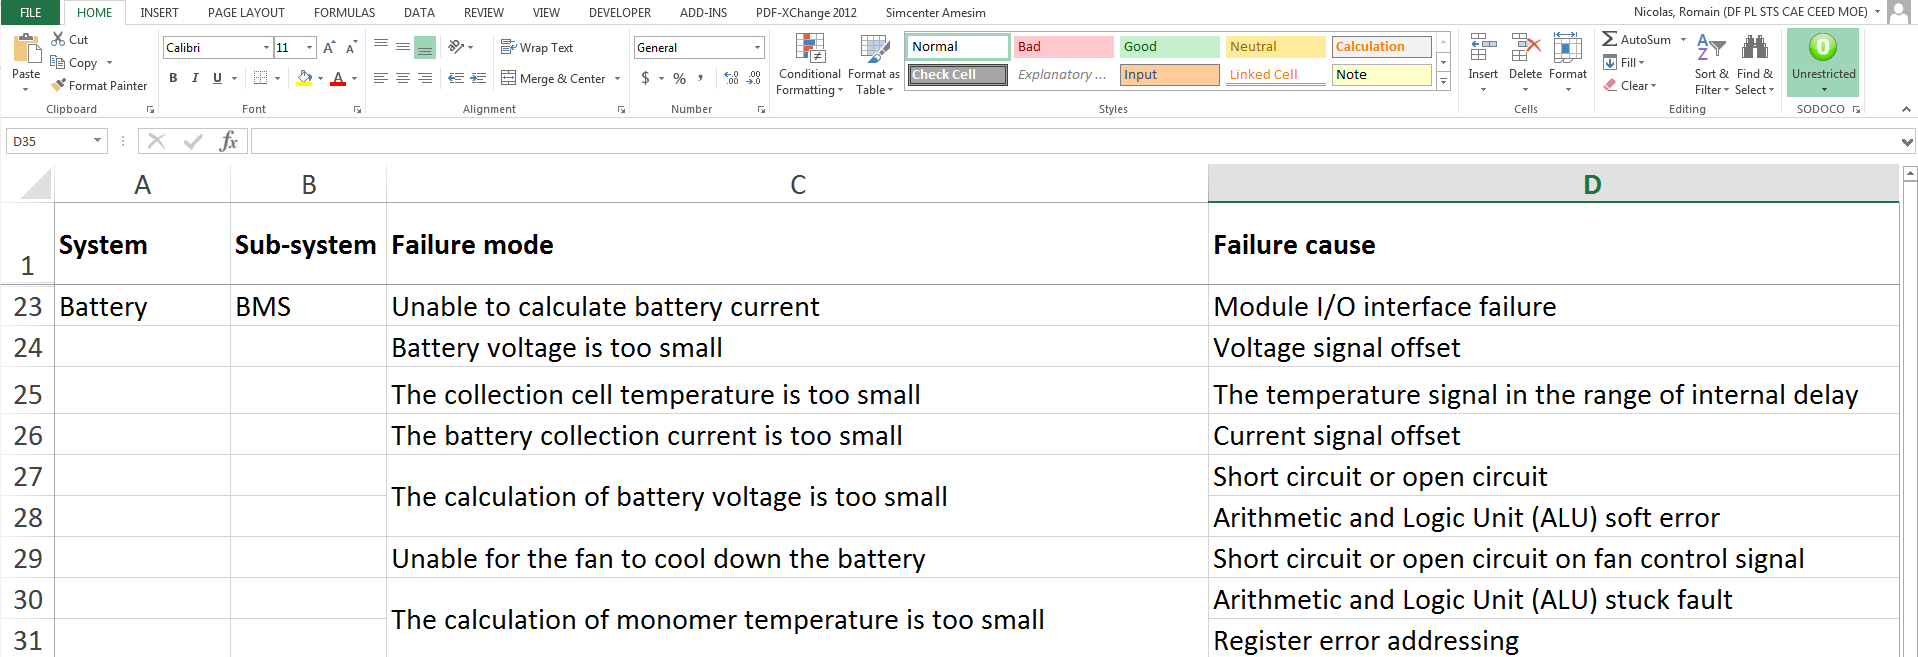 1_SFMEA_determining failure modes and causes.png